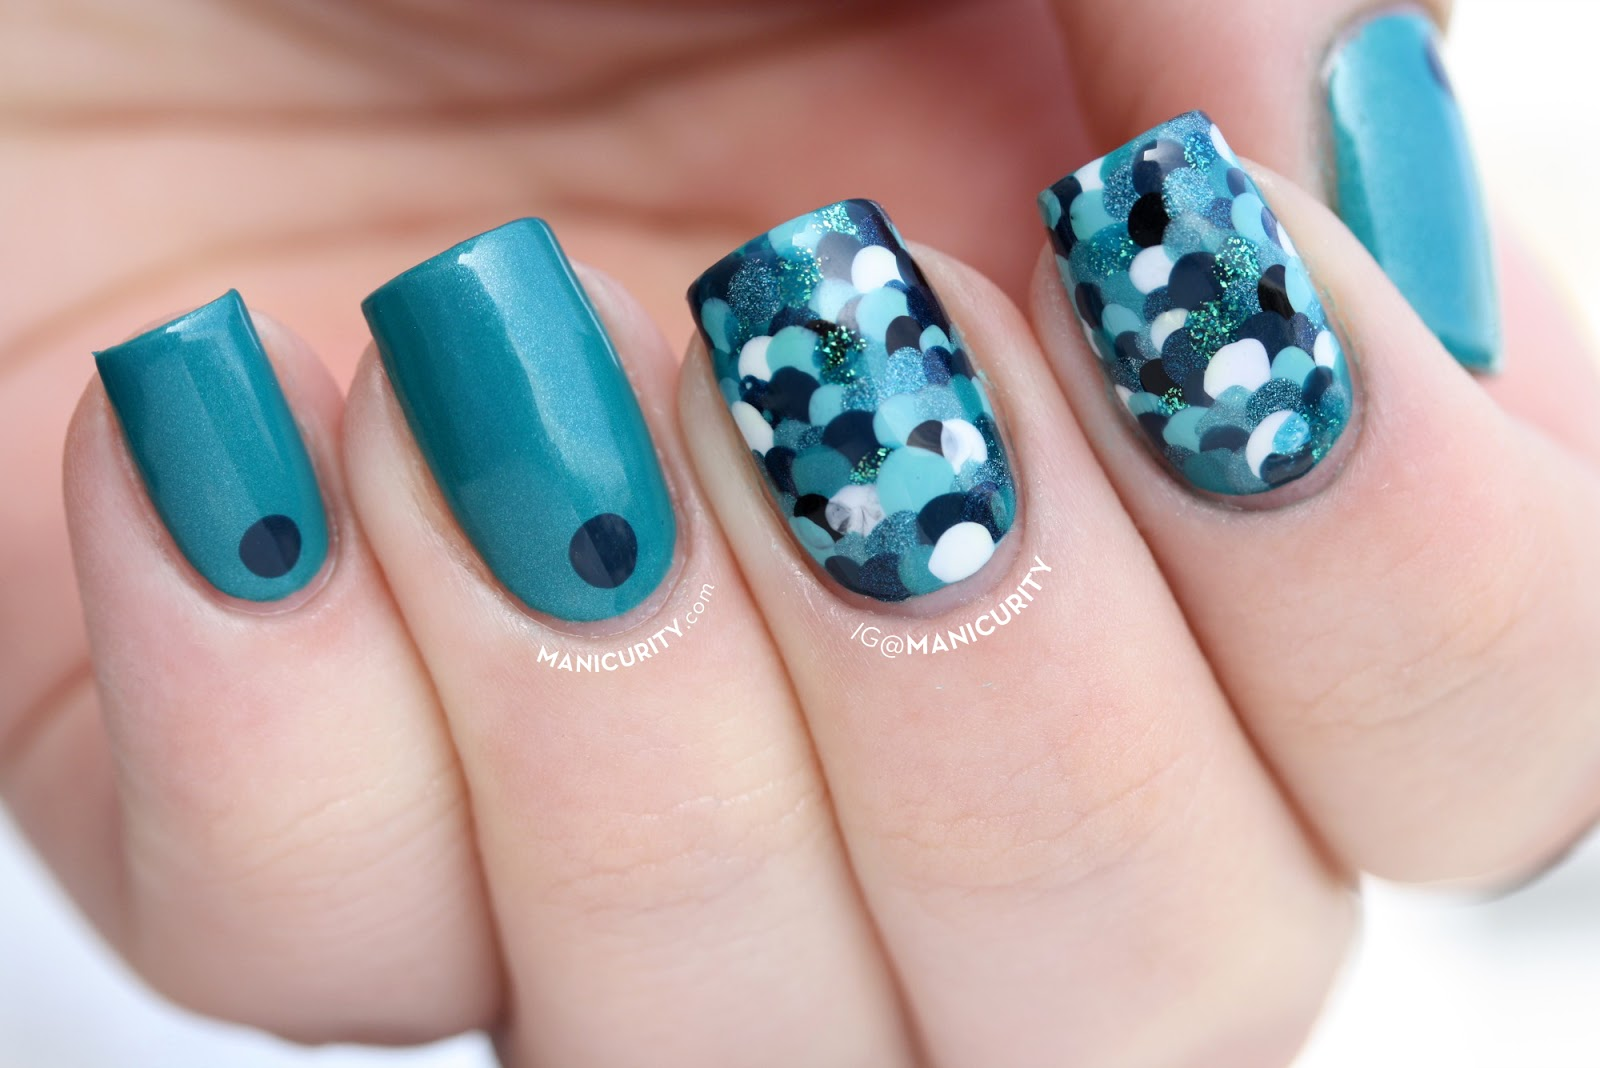 Mermaid Nails in Shades of Teal for Digit-al Dozen Monochrom week - Manicurity.com | mermaid scale dotticure nails done with 7 different shades of teal!